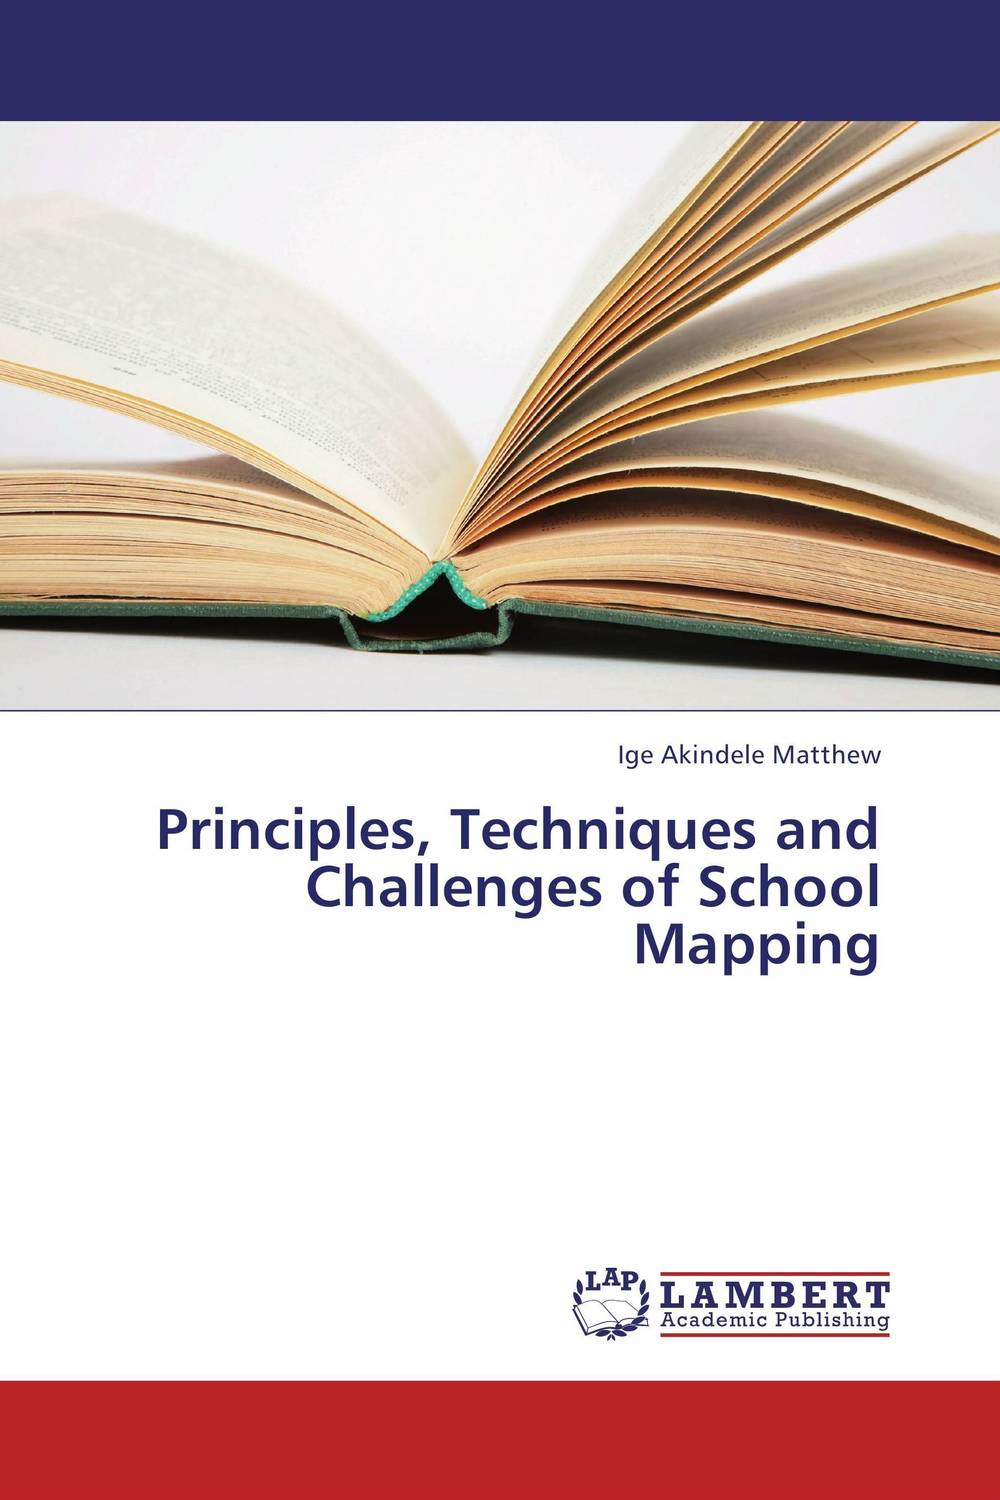 Principles, Techniques and Challenges of School Mapping